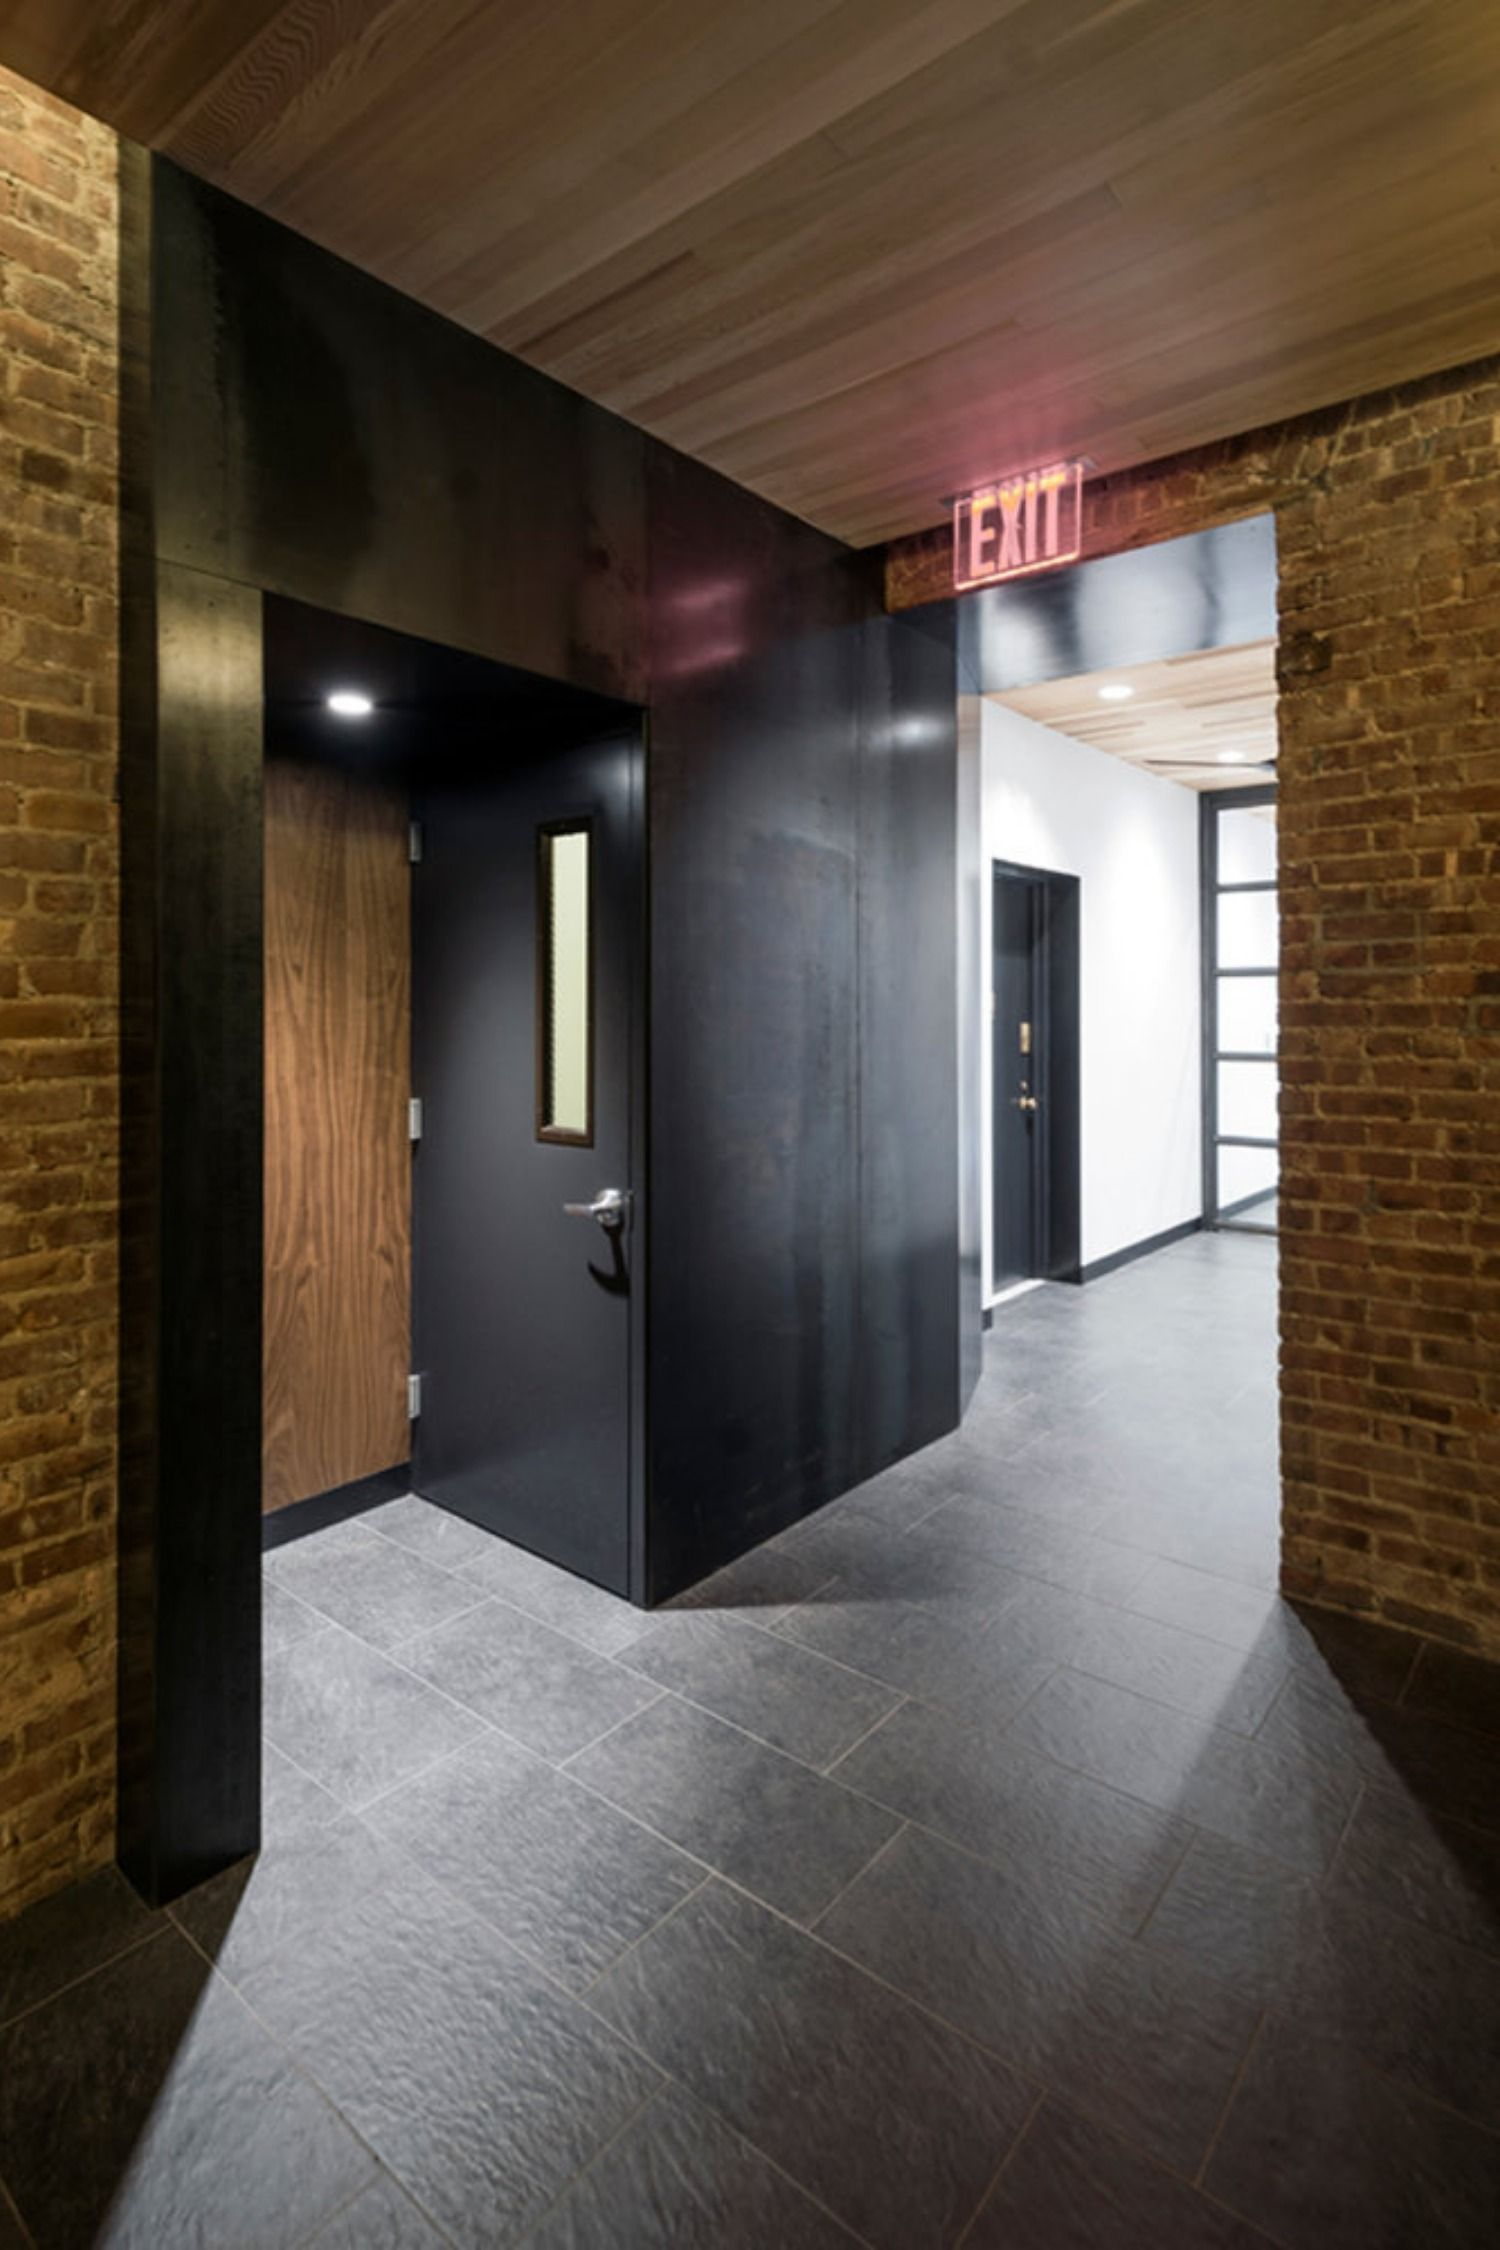 Res4 Modern Lobby Design For A Residential Apartment Building In Brooklyn Heights Nyc Mixes Exposed Bri Modern Renovation Basement Apartment Decor Lobby Design